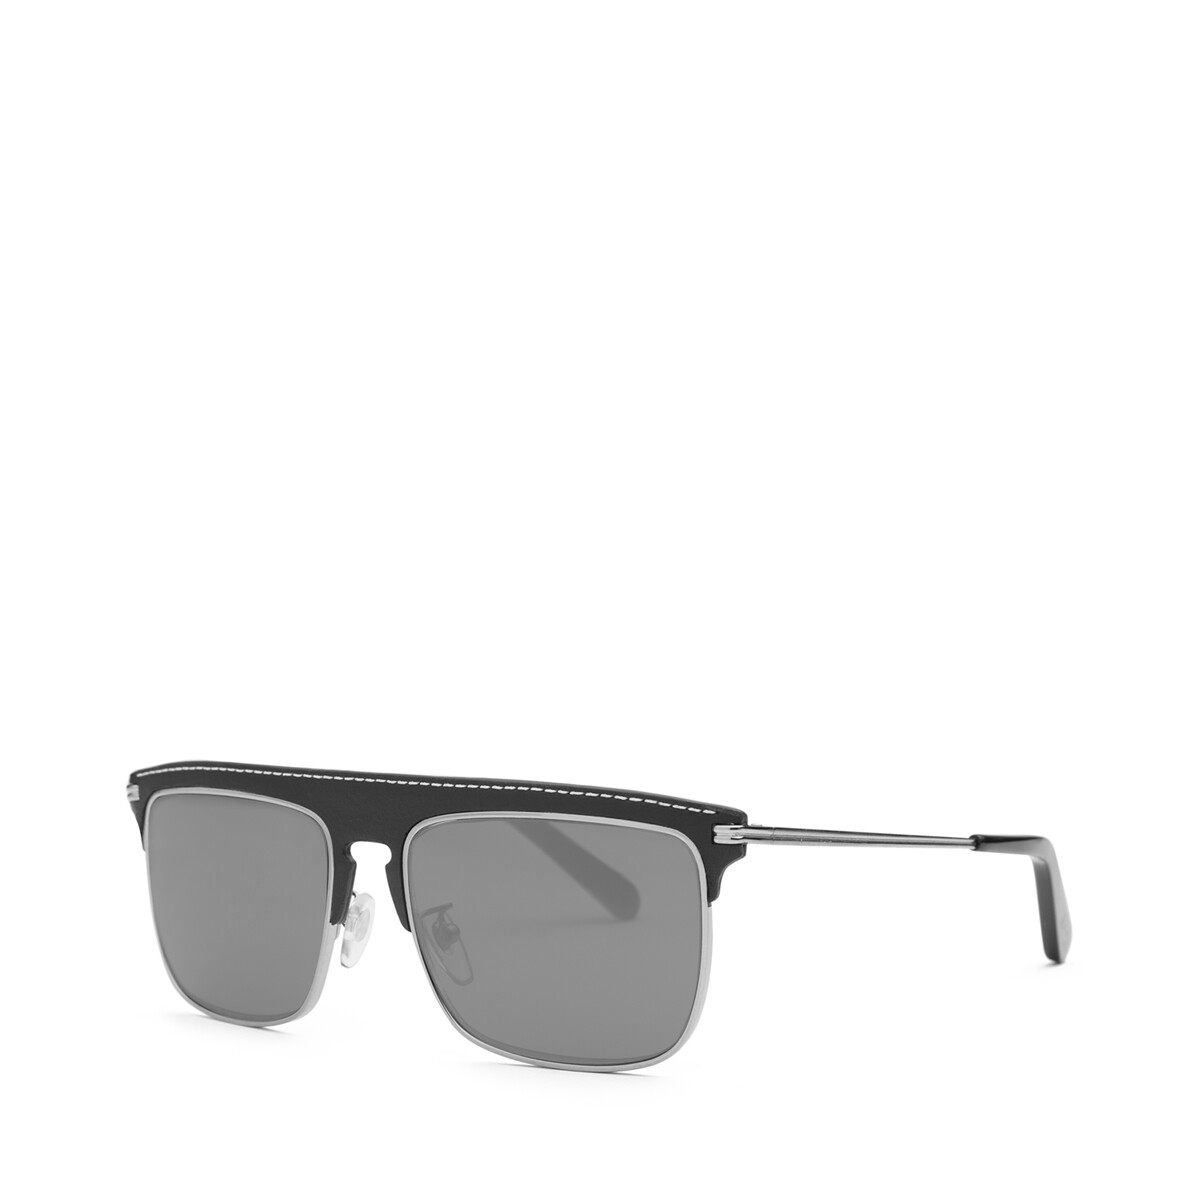 LOEWE Square Sunglasses Black/Smoke front